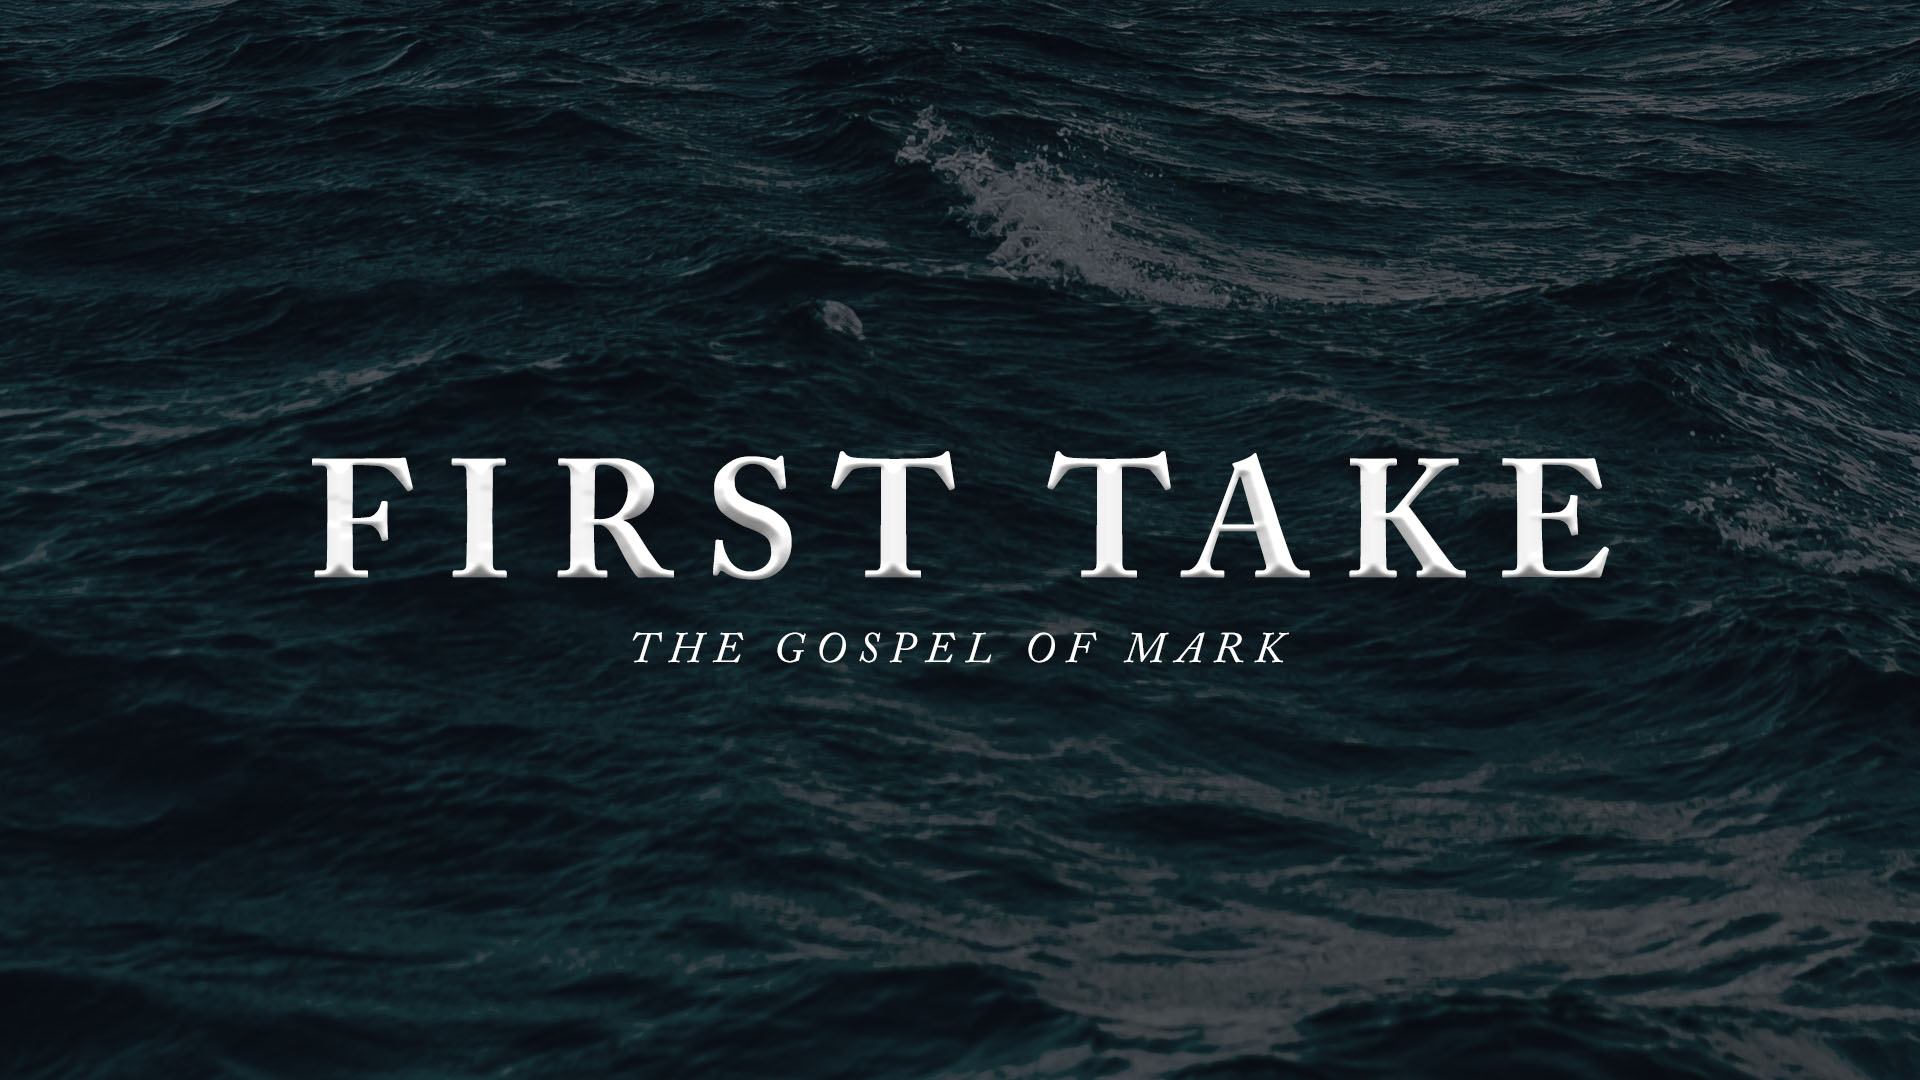 First Take: Lost Focus